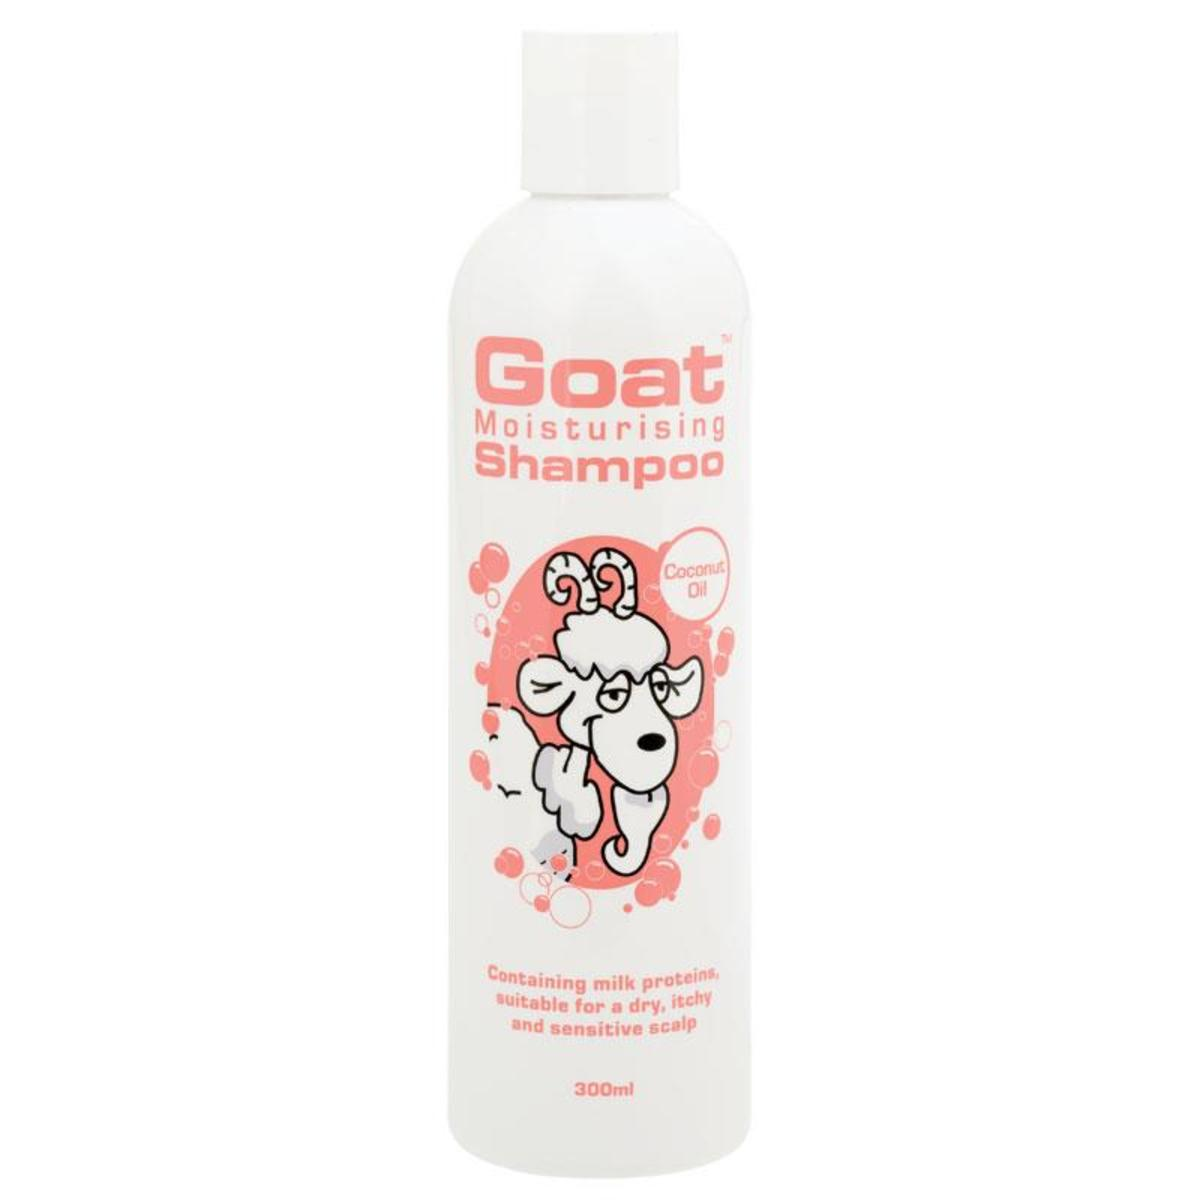 Goat Shampoo with Coconut Oil 300ml (Parallel Import)